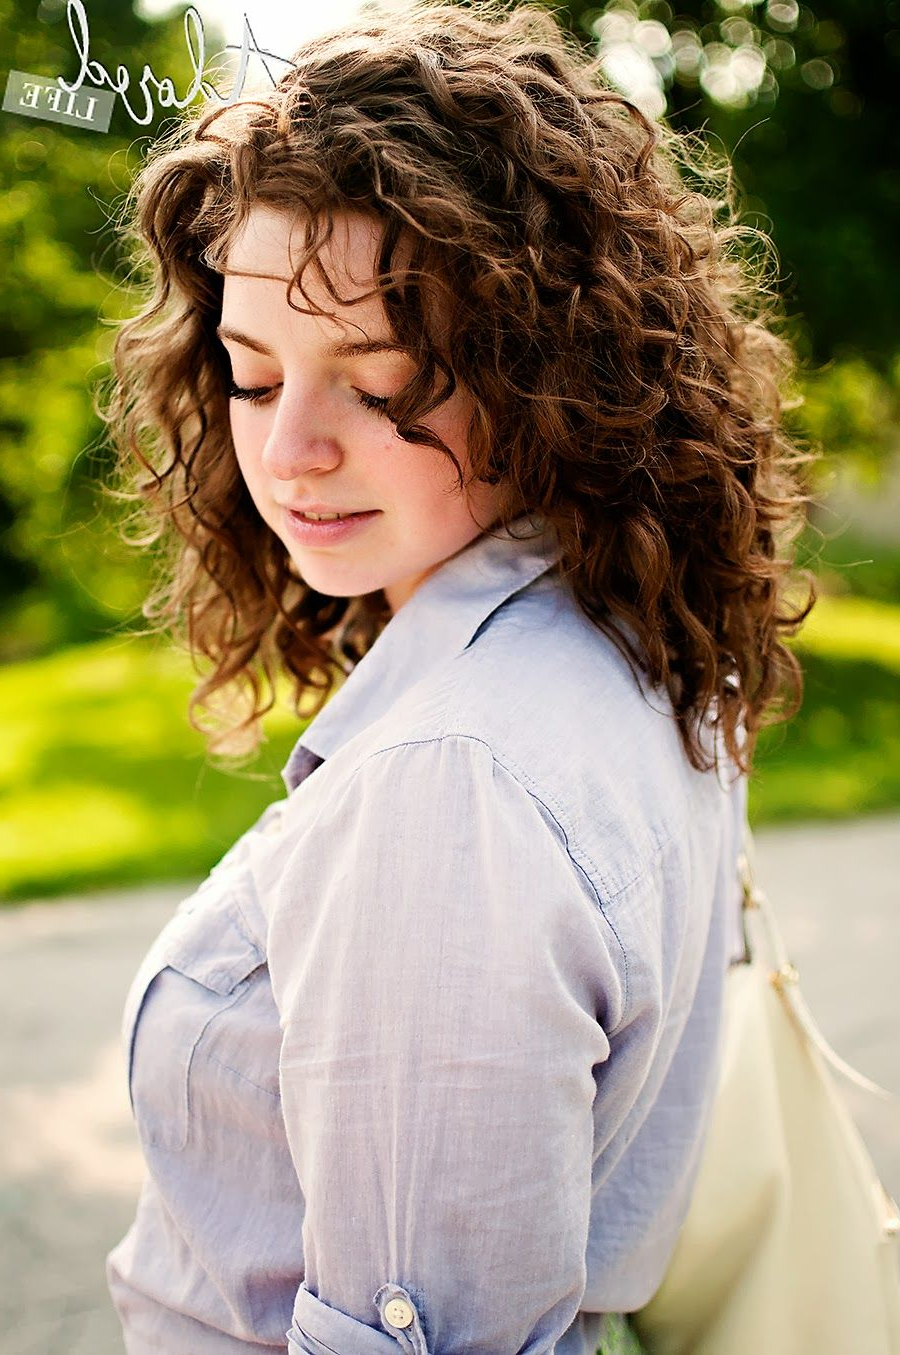 Current Naturally Curly Medium Haircuts With Regard To Curly Hair Care And Hairstyles For Those Pinterest Worthy Curls (View 4 of 20)